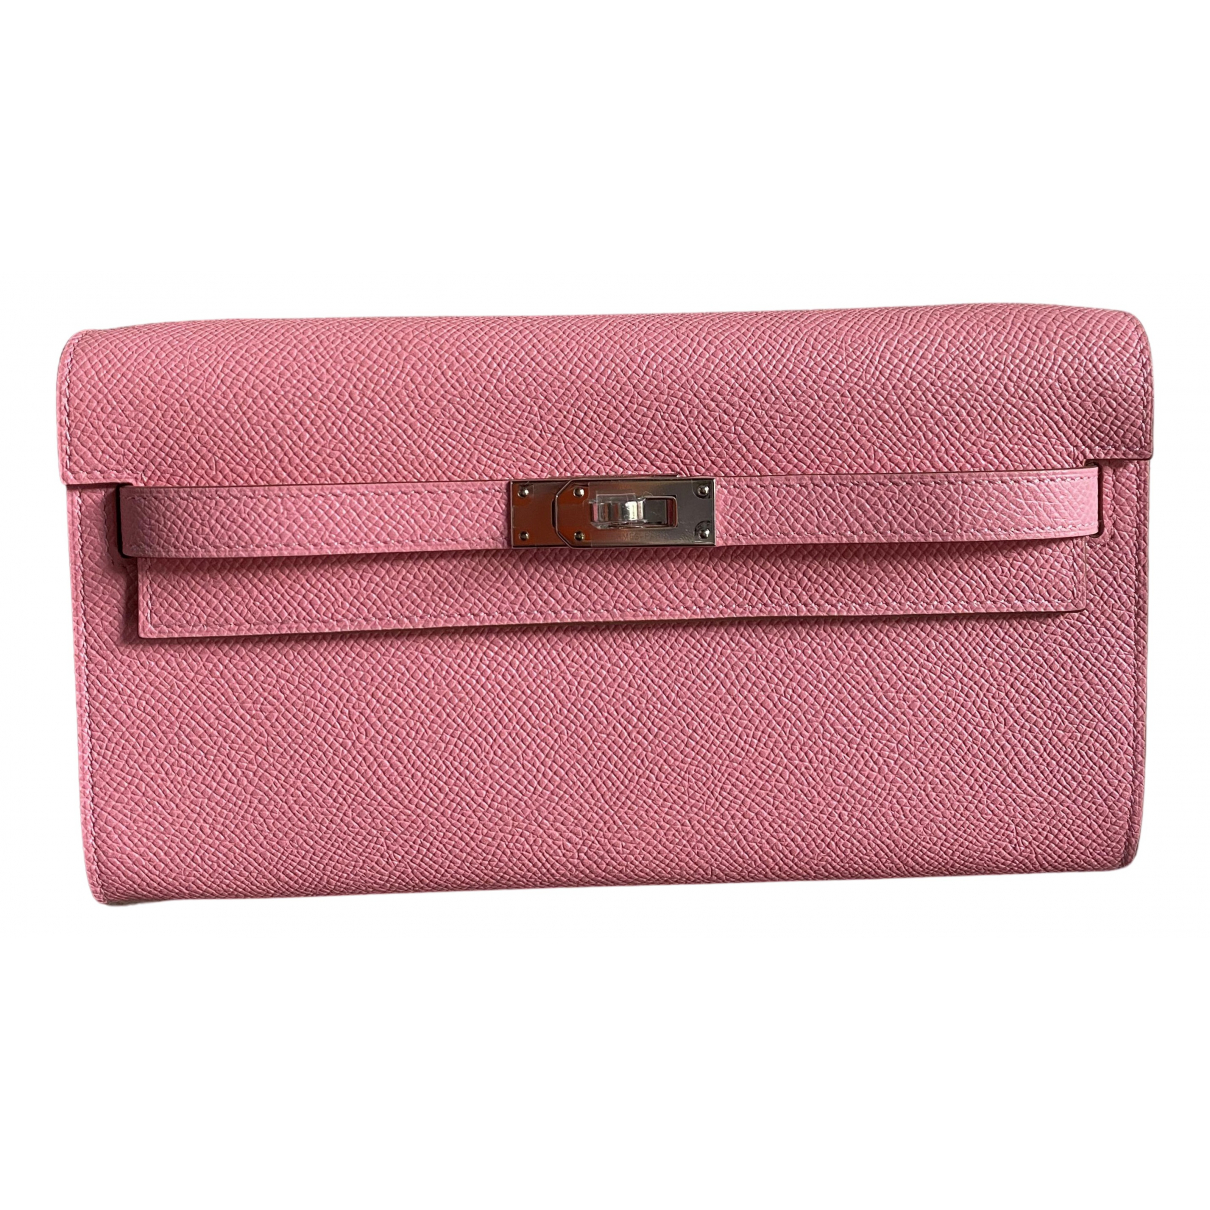 Hermes Kelly to go Clutch in  Rosa Leder